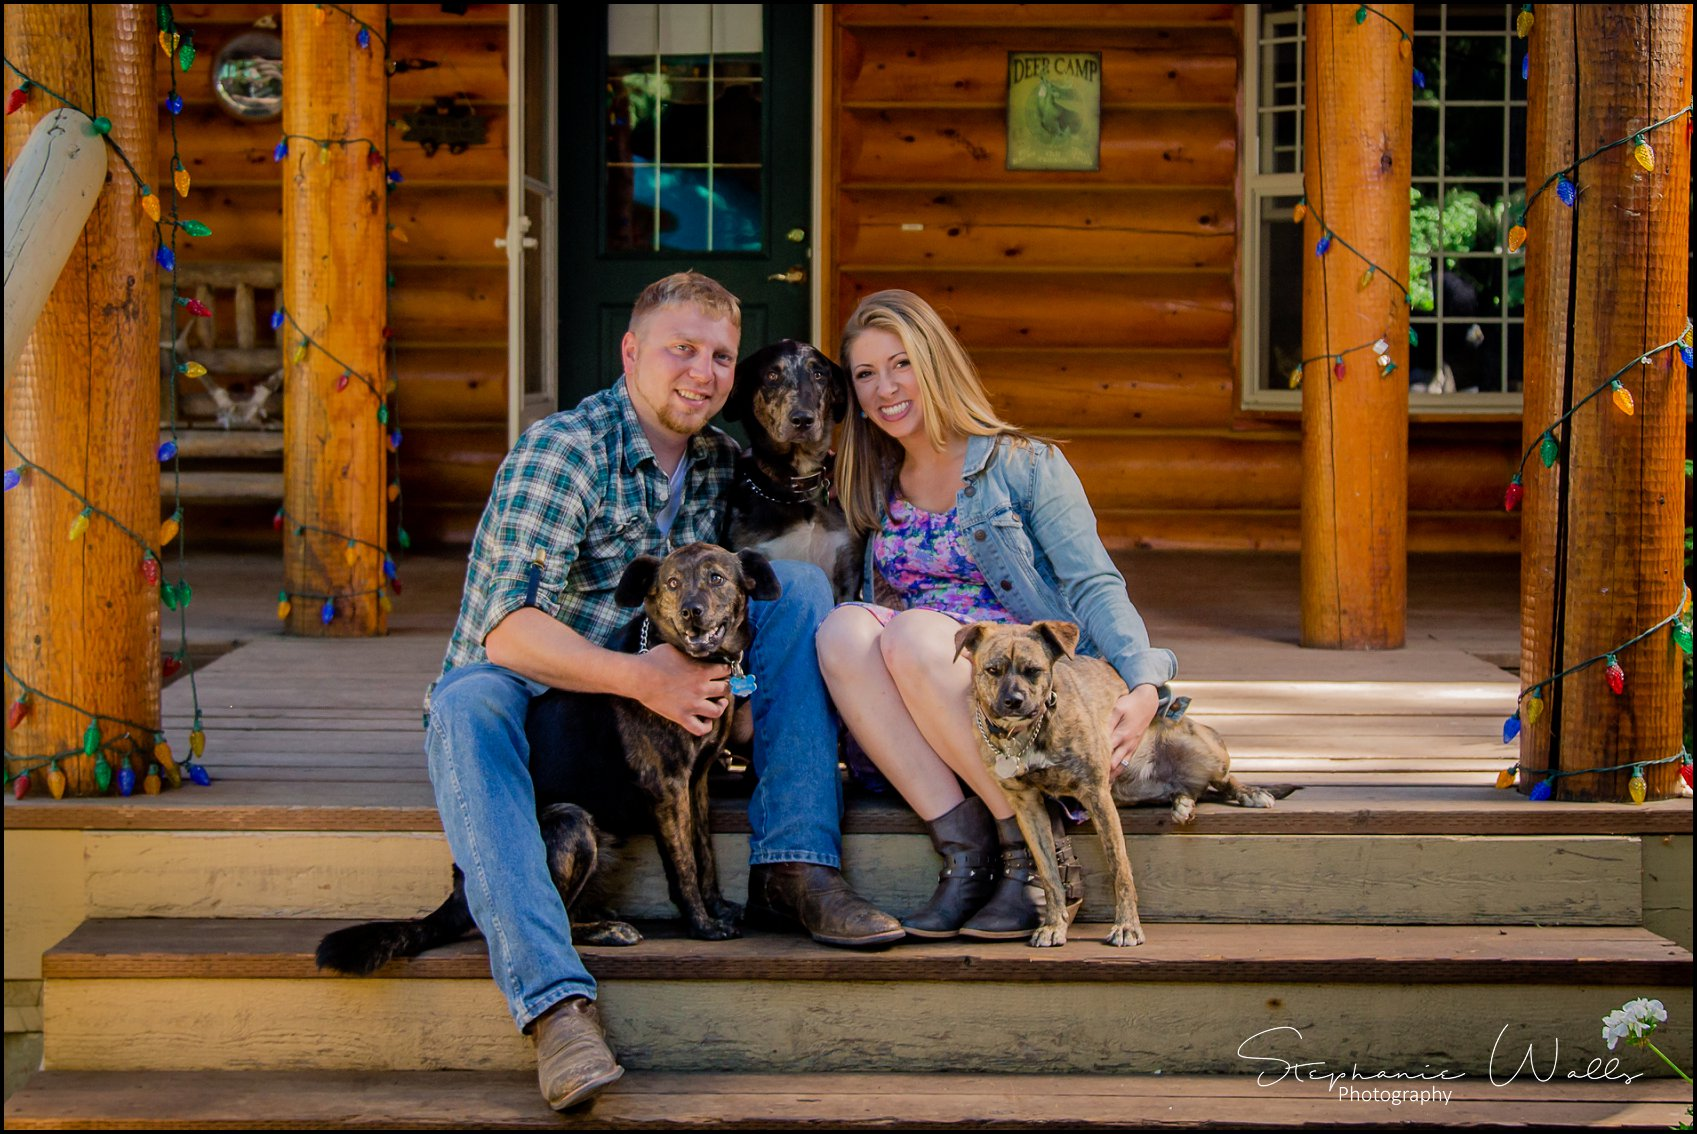 Taylor Jessie012 TAYLOR & JESSE | EASTON, WA ENGAGEMENT SESSION { SNOHOMISH WEDDING PHOTOGRAPHER }